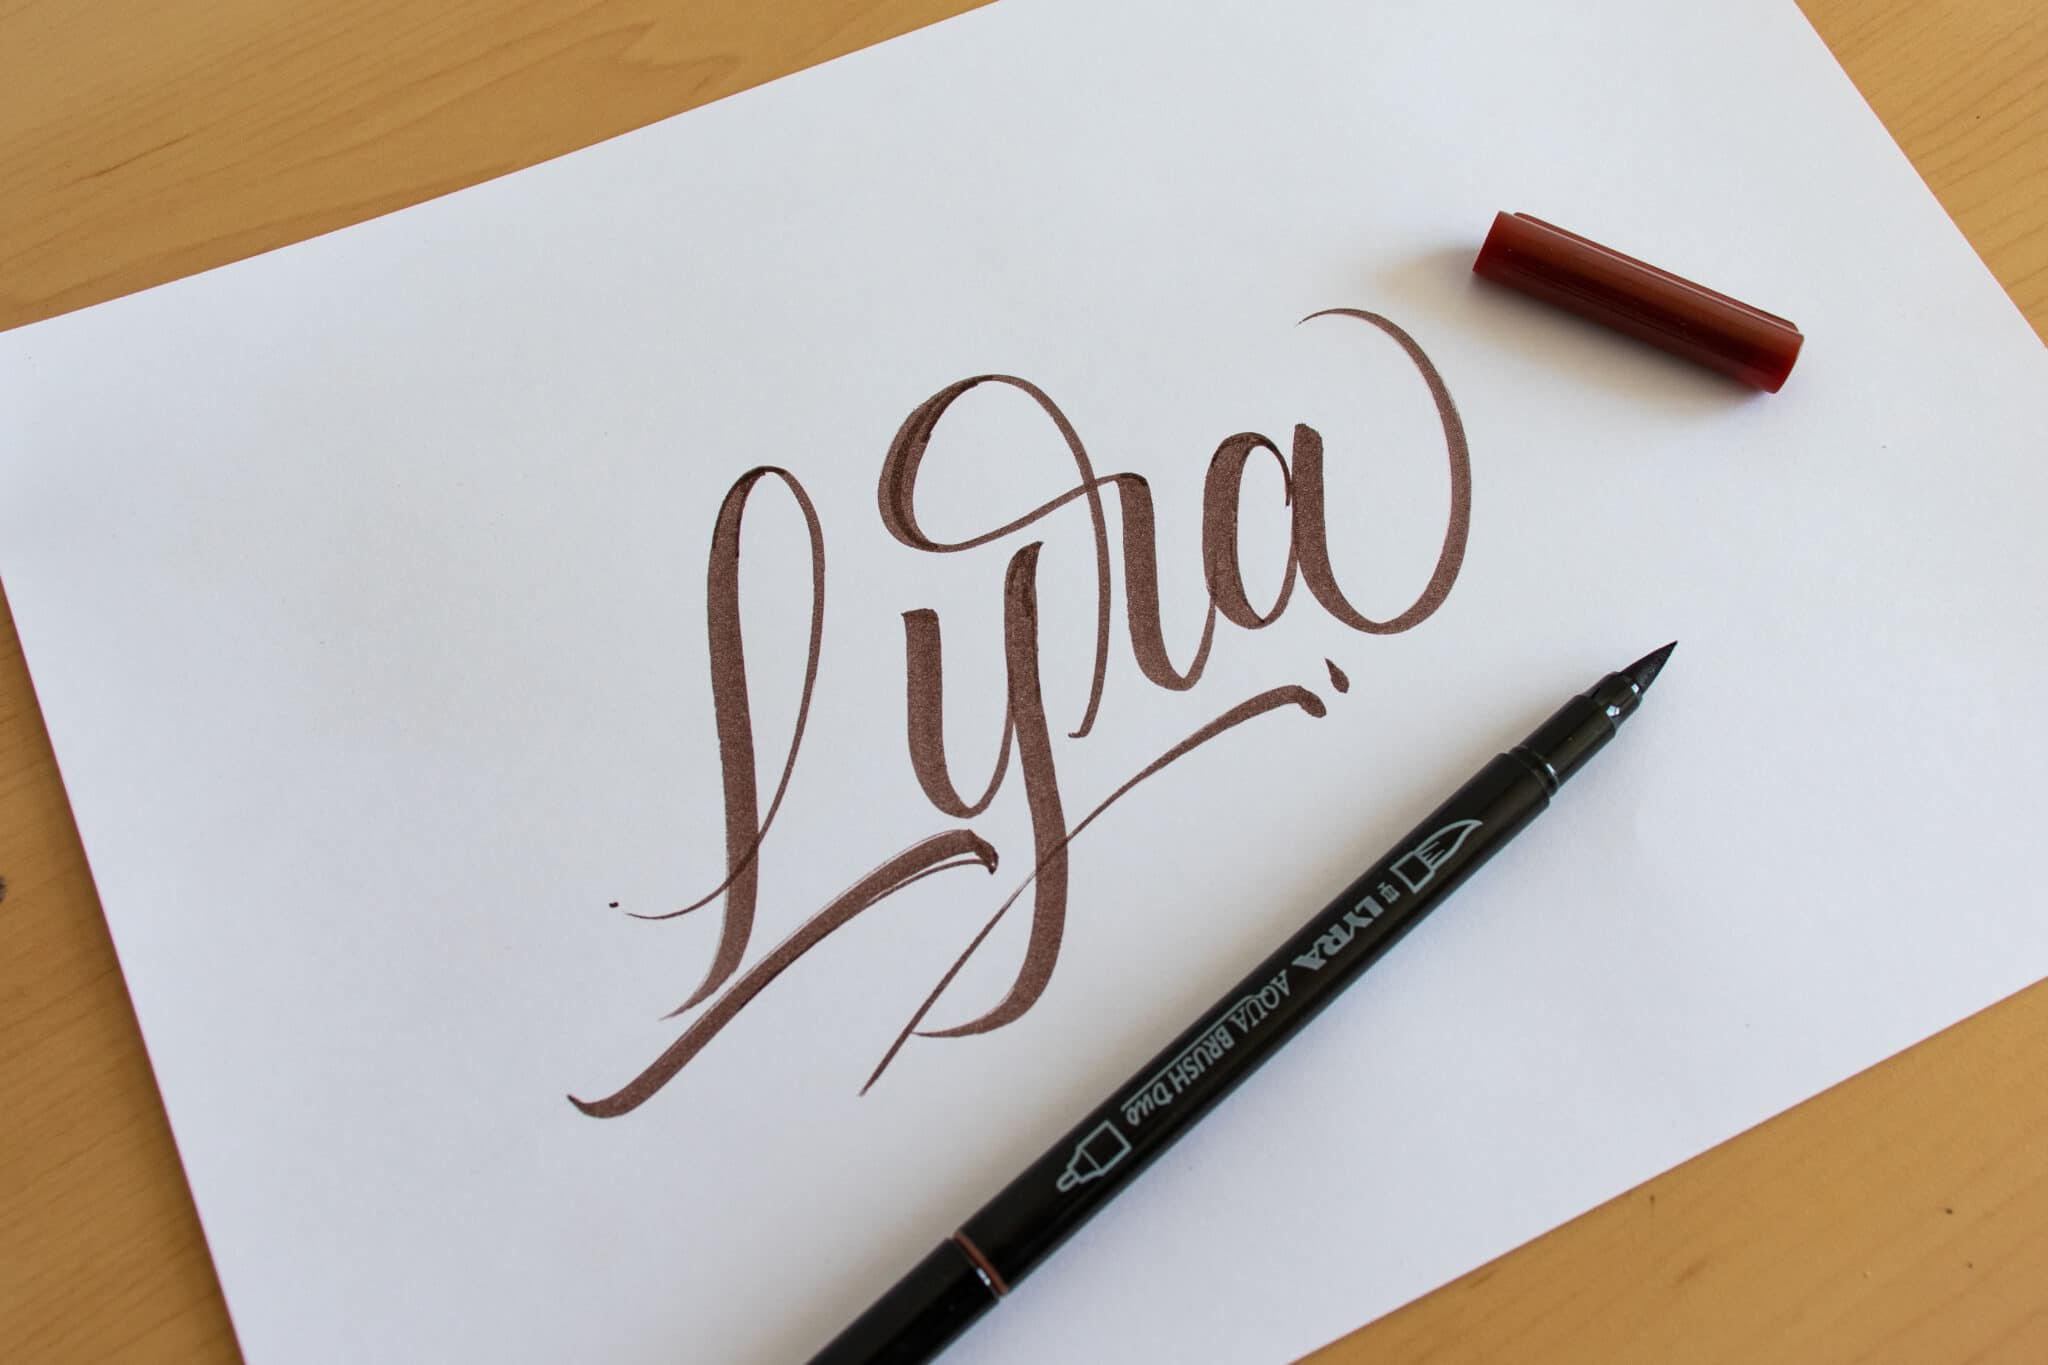 Lyra brush pen - sample calligraphy